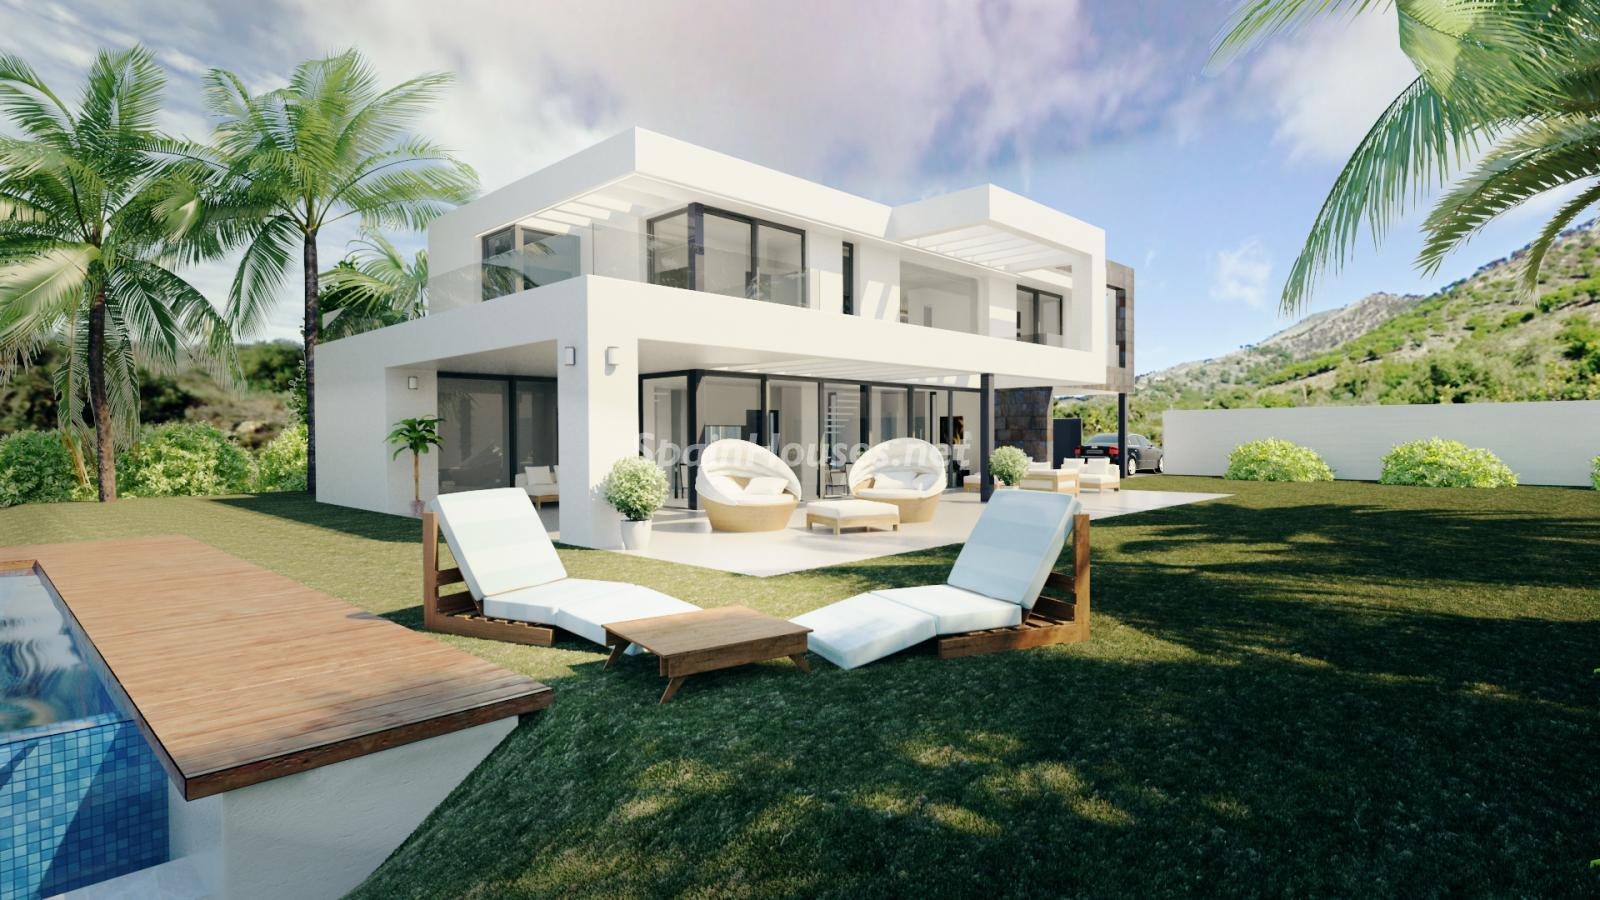 1. Buena Vista Hills - Buena Vista Hills, 26 Modern Villas with Panoramic Sea Views in Mijas, Costa del Sol